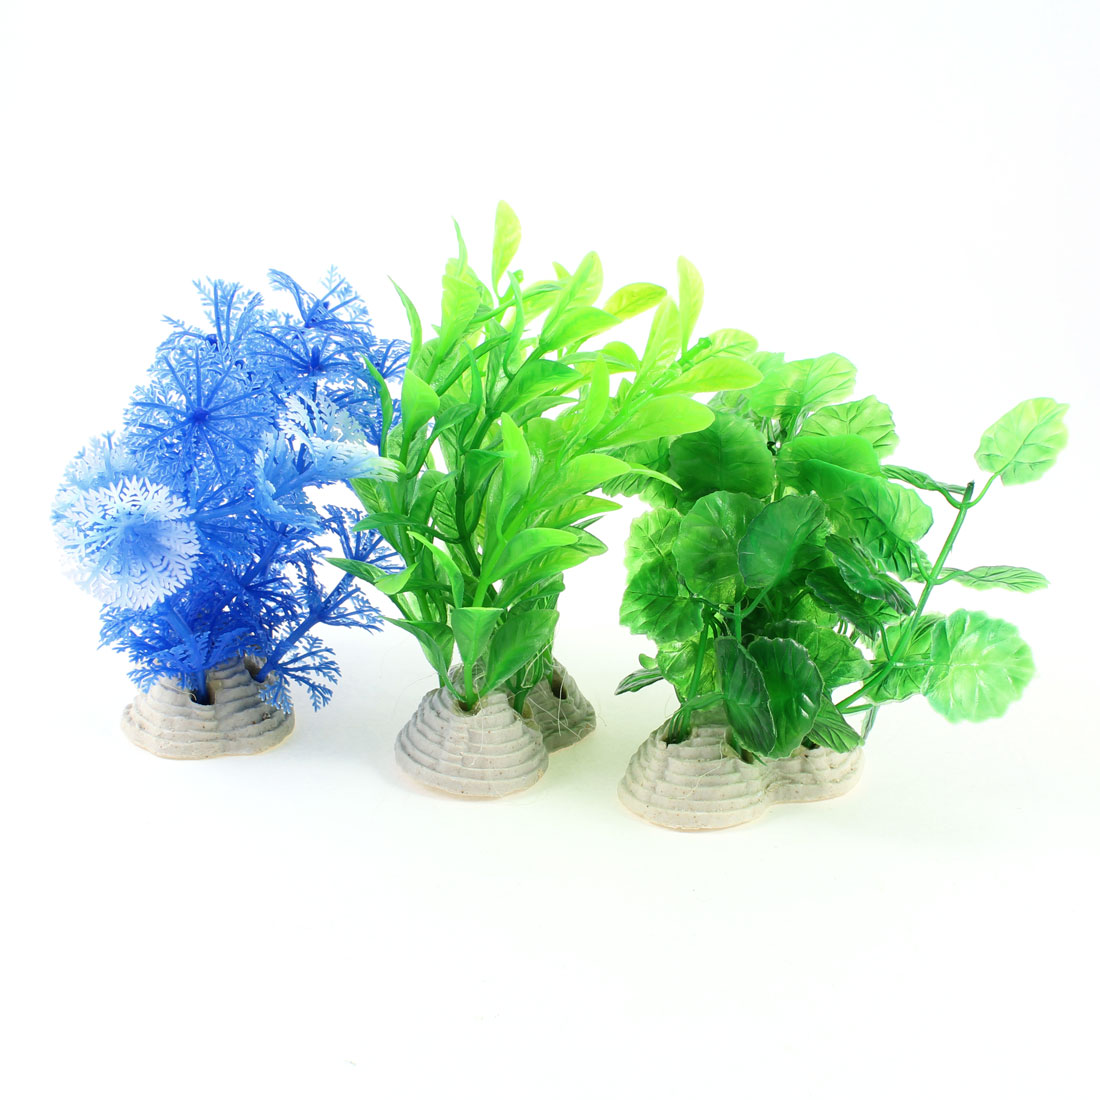 3 Pcs Aquascaping Decor Blue Green Artificial Water Plant w Ceramic Base